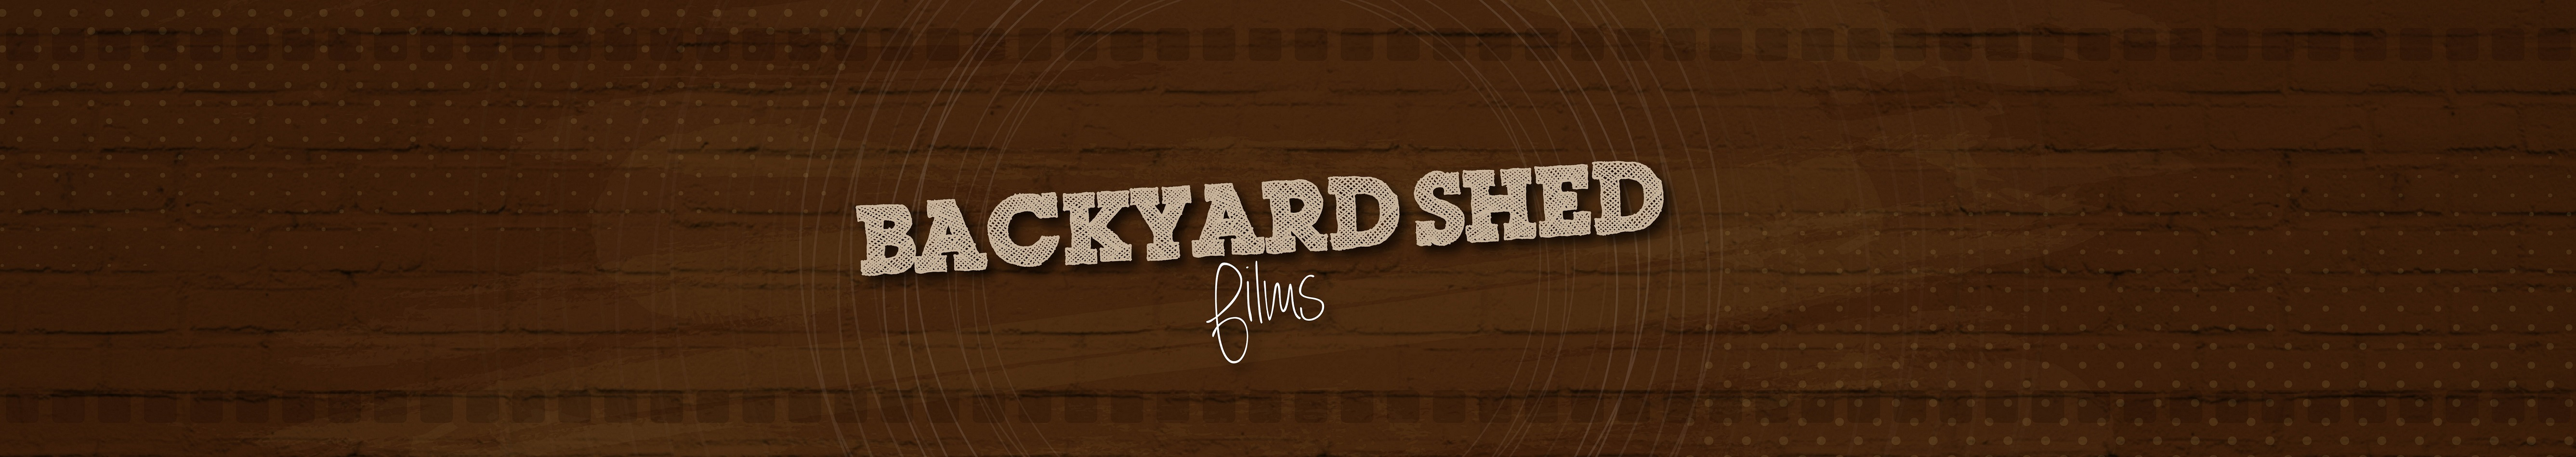 BuddyPress Activate | Backyard Shed Films